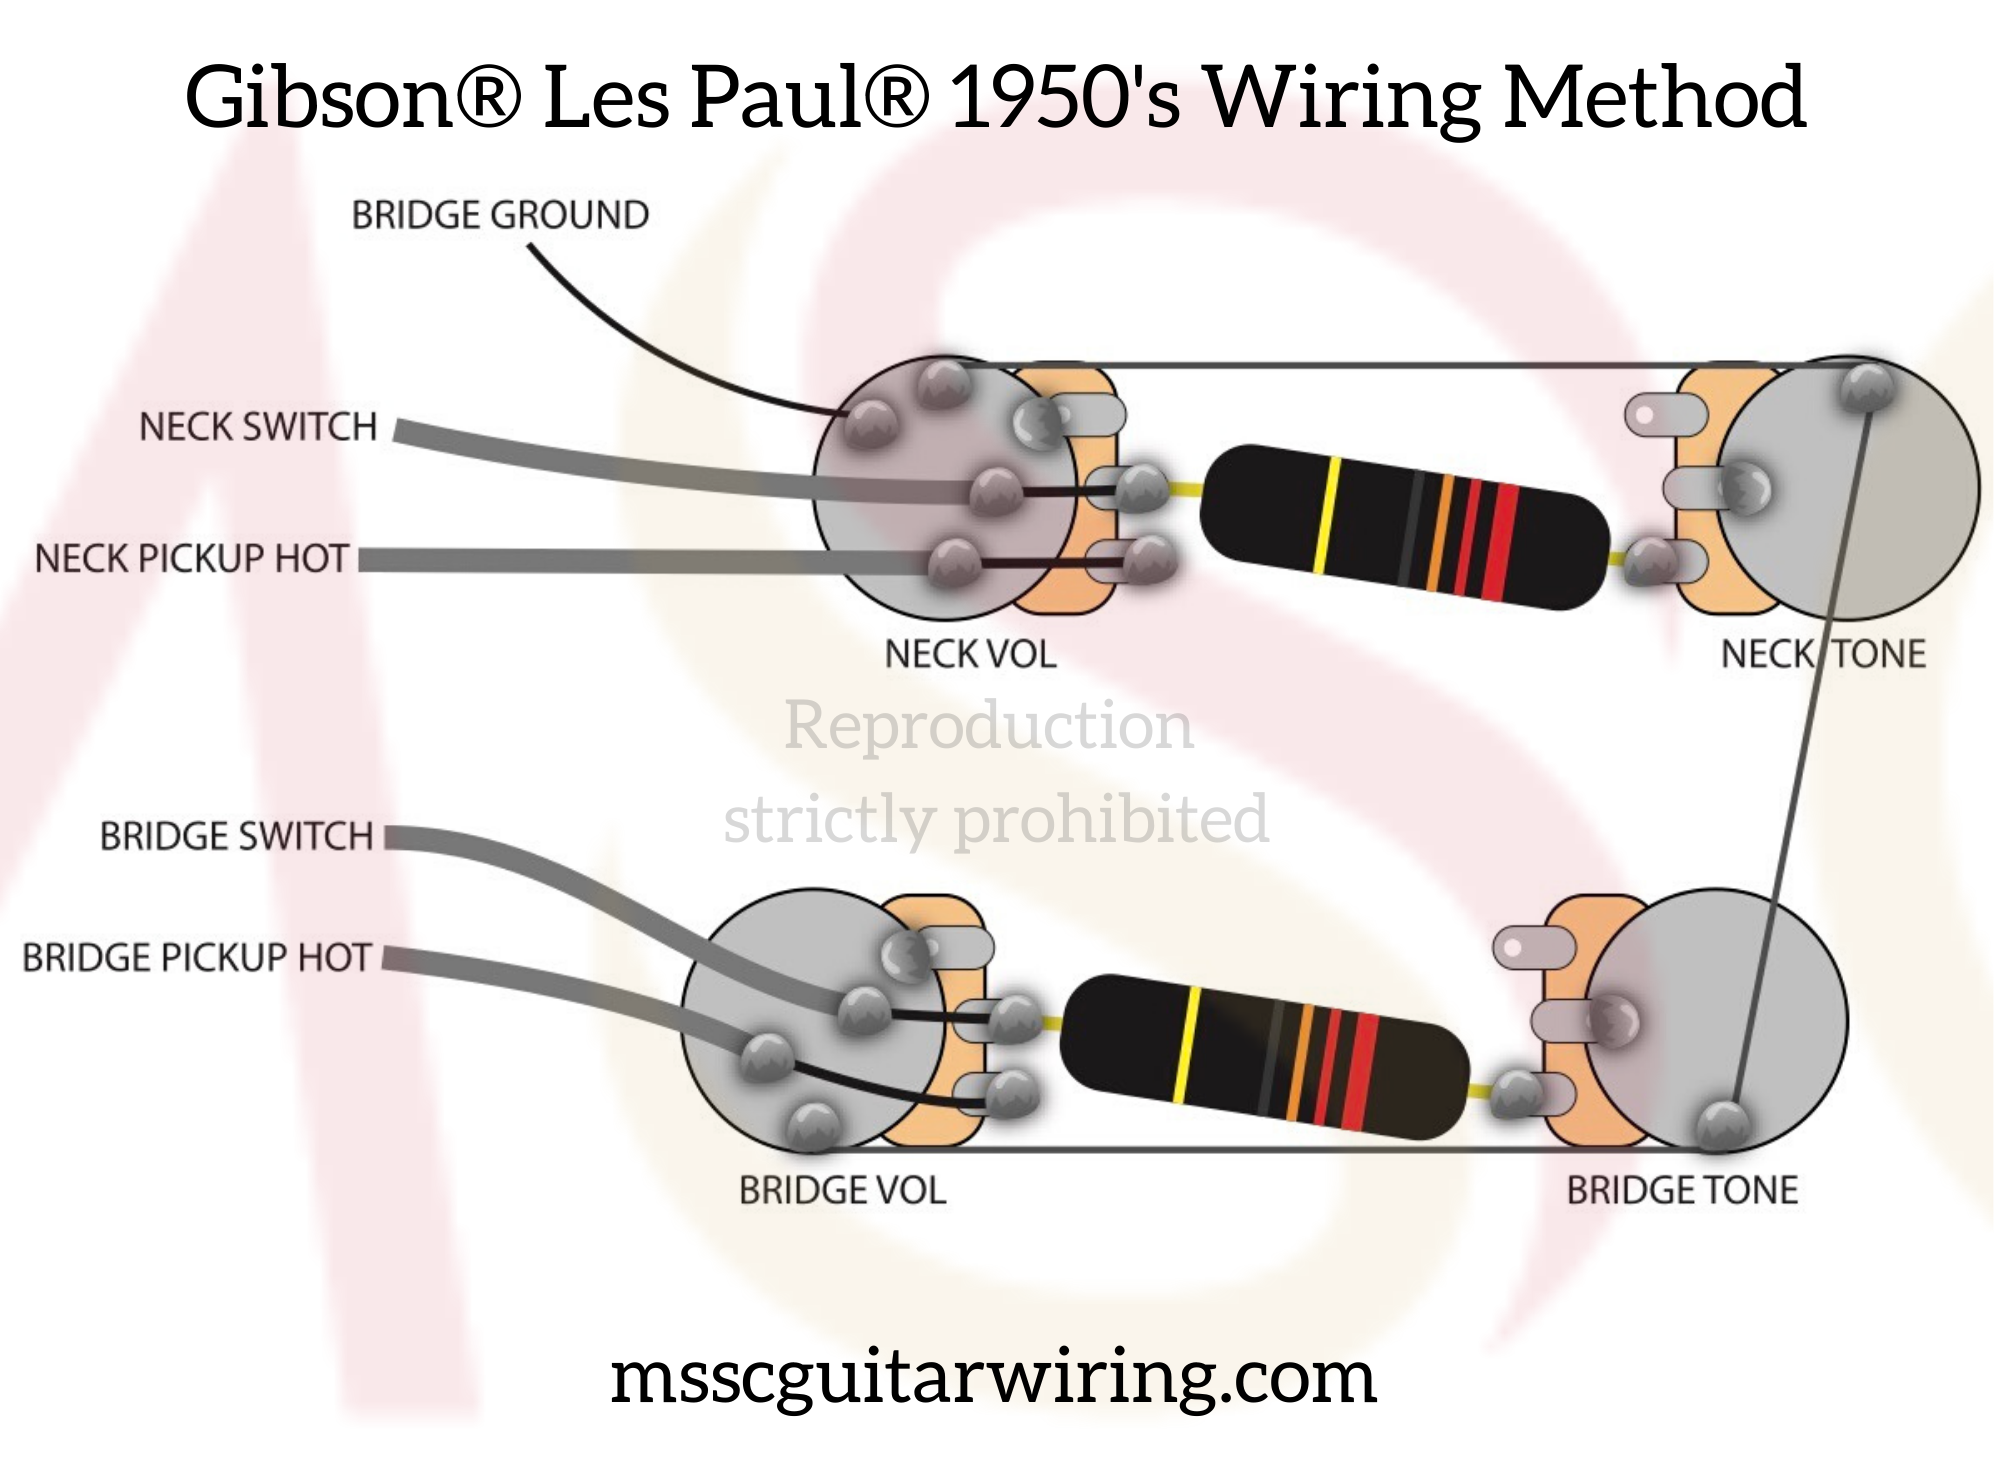 1950S Les Paul Wiring Diagram from images.squarespace-cdn.com